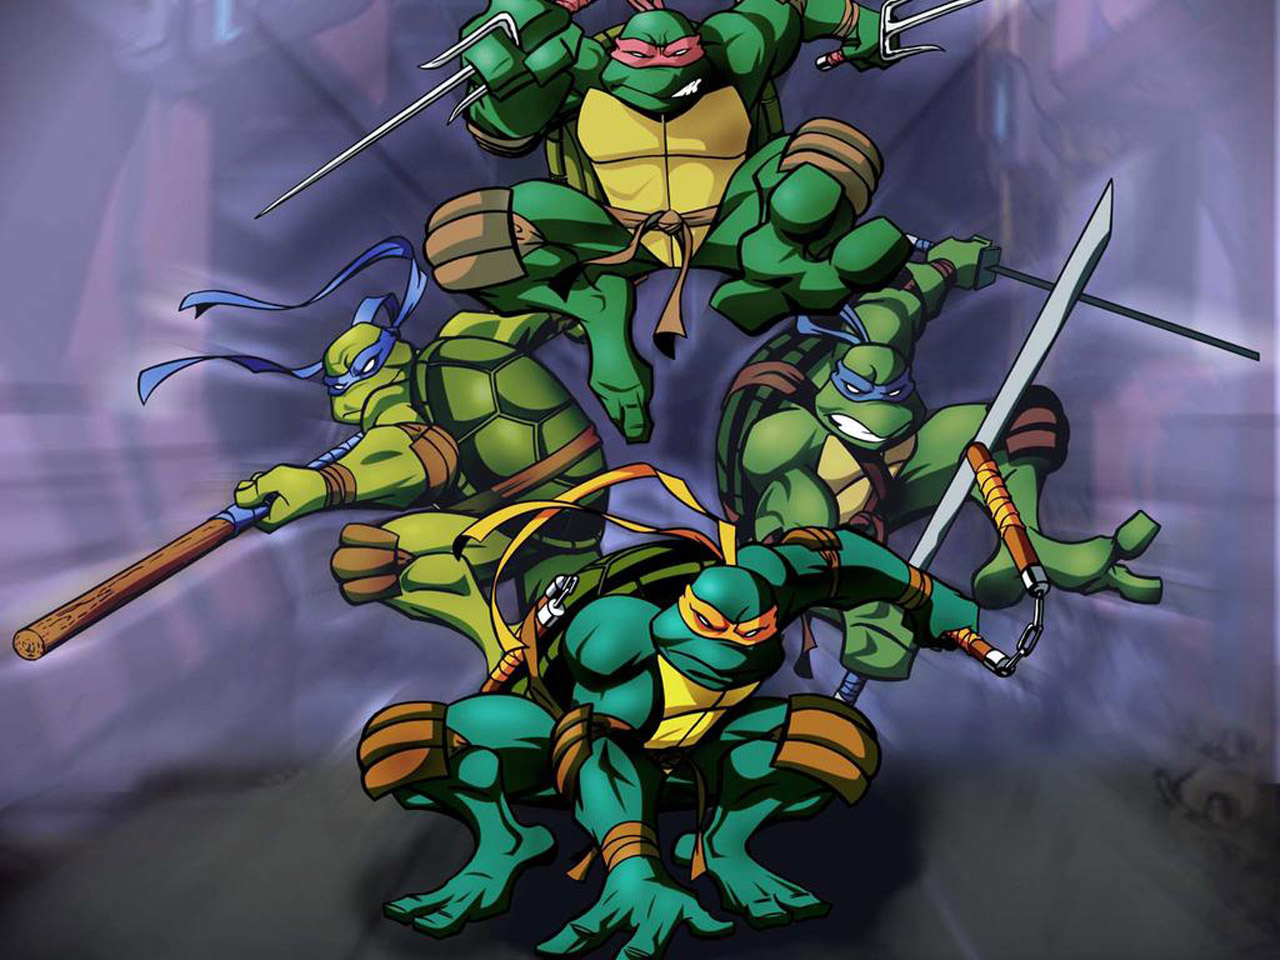 TMNT wallpaper 2003-2009 series (31)